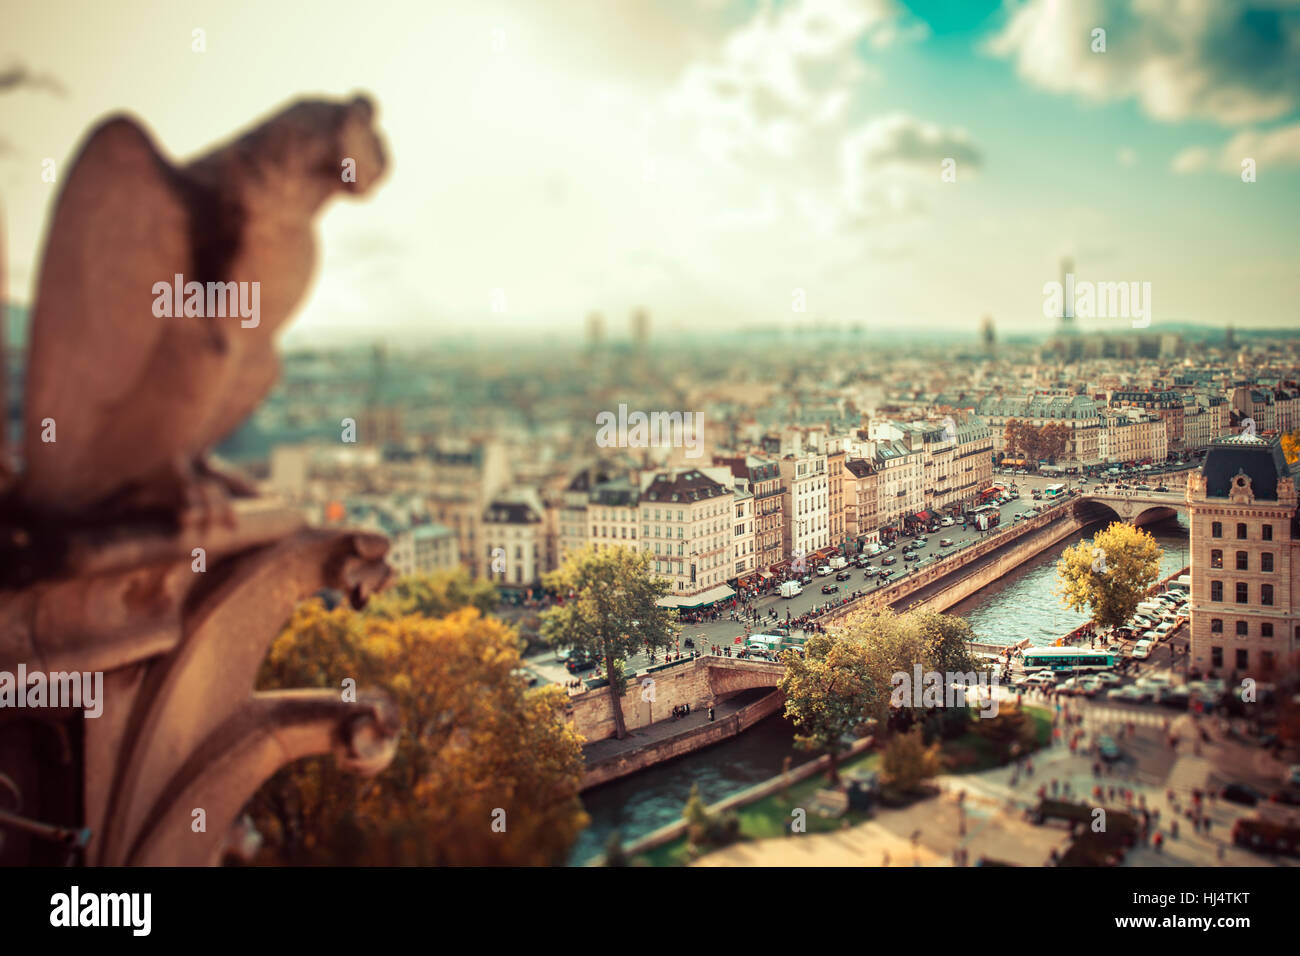 Tilt-shift miniature effect of panoramic view across Paris with gargoyle in foreground - Stock Image